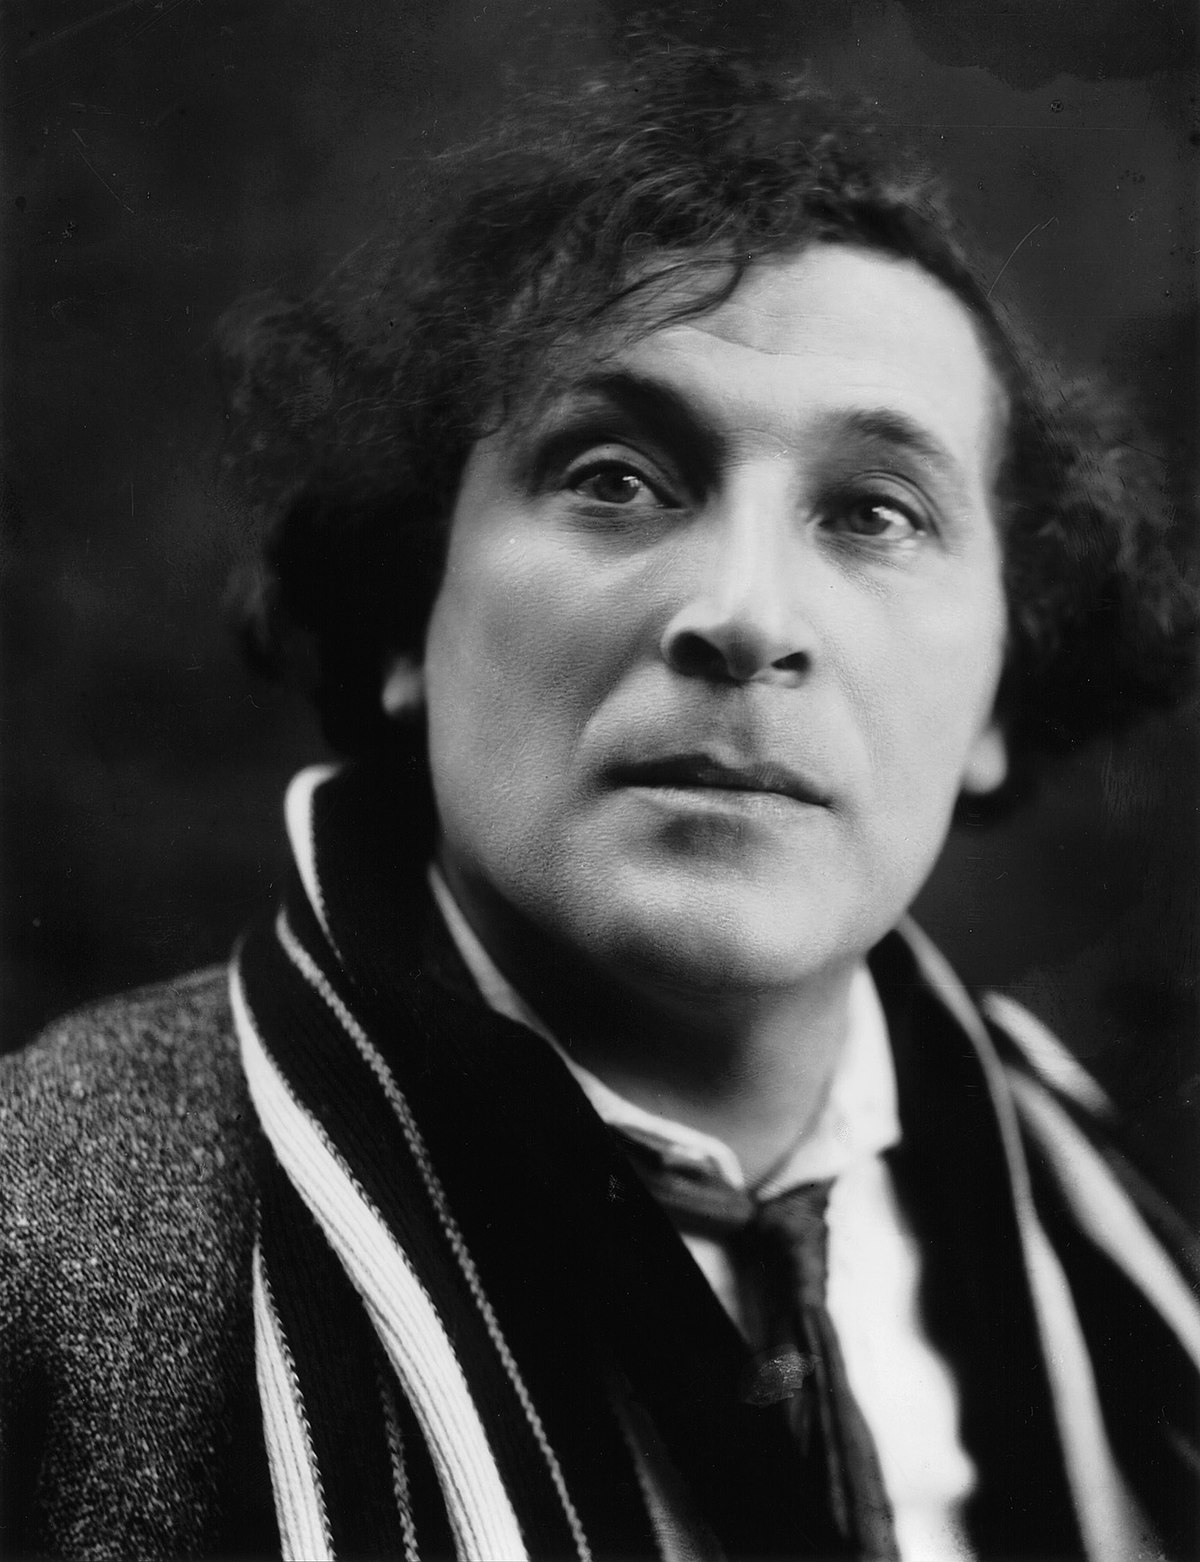 marc chagall et bella : marc chagall anglais :  marc chagall happy birthday en 2020/2021